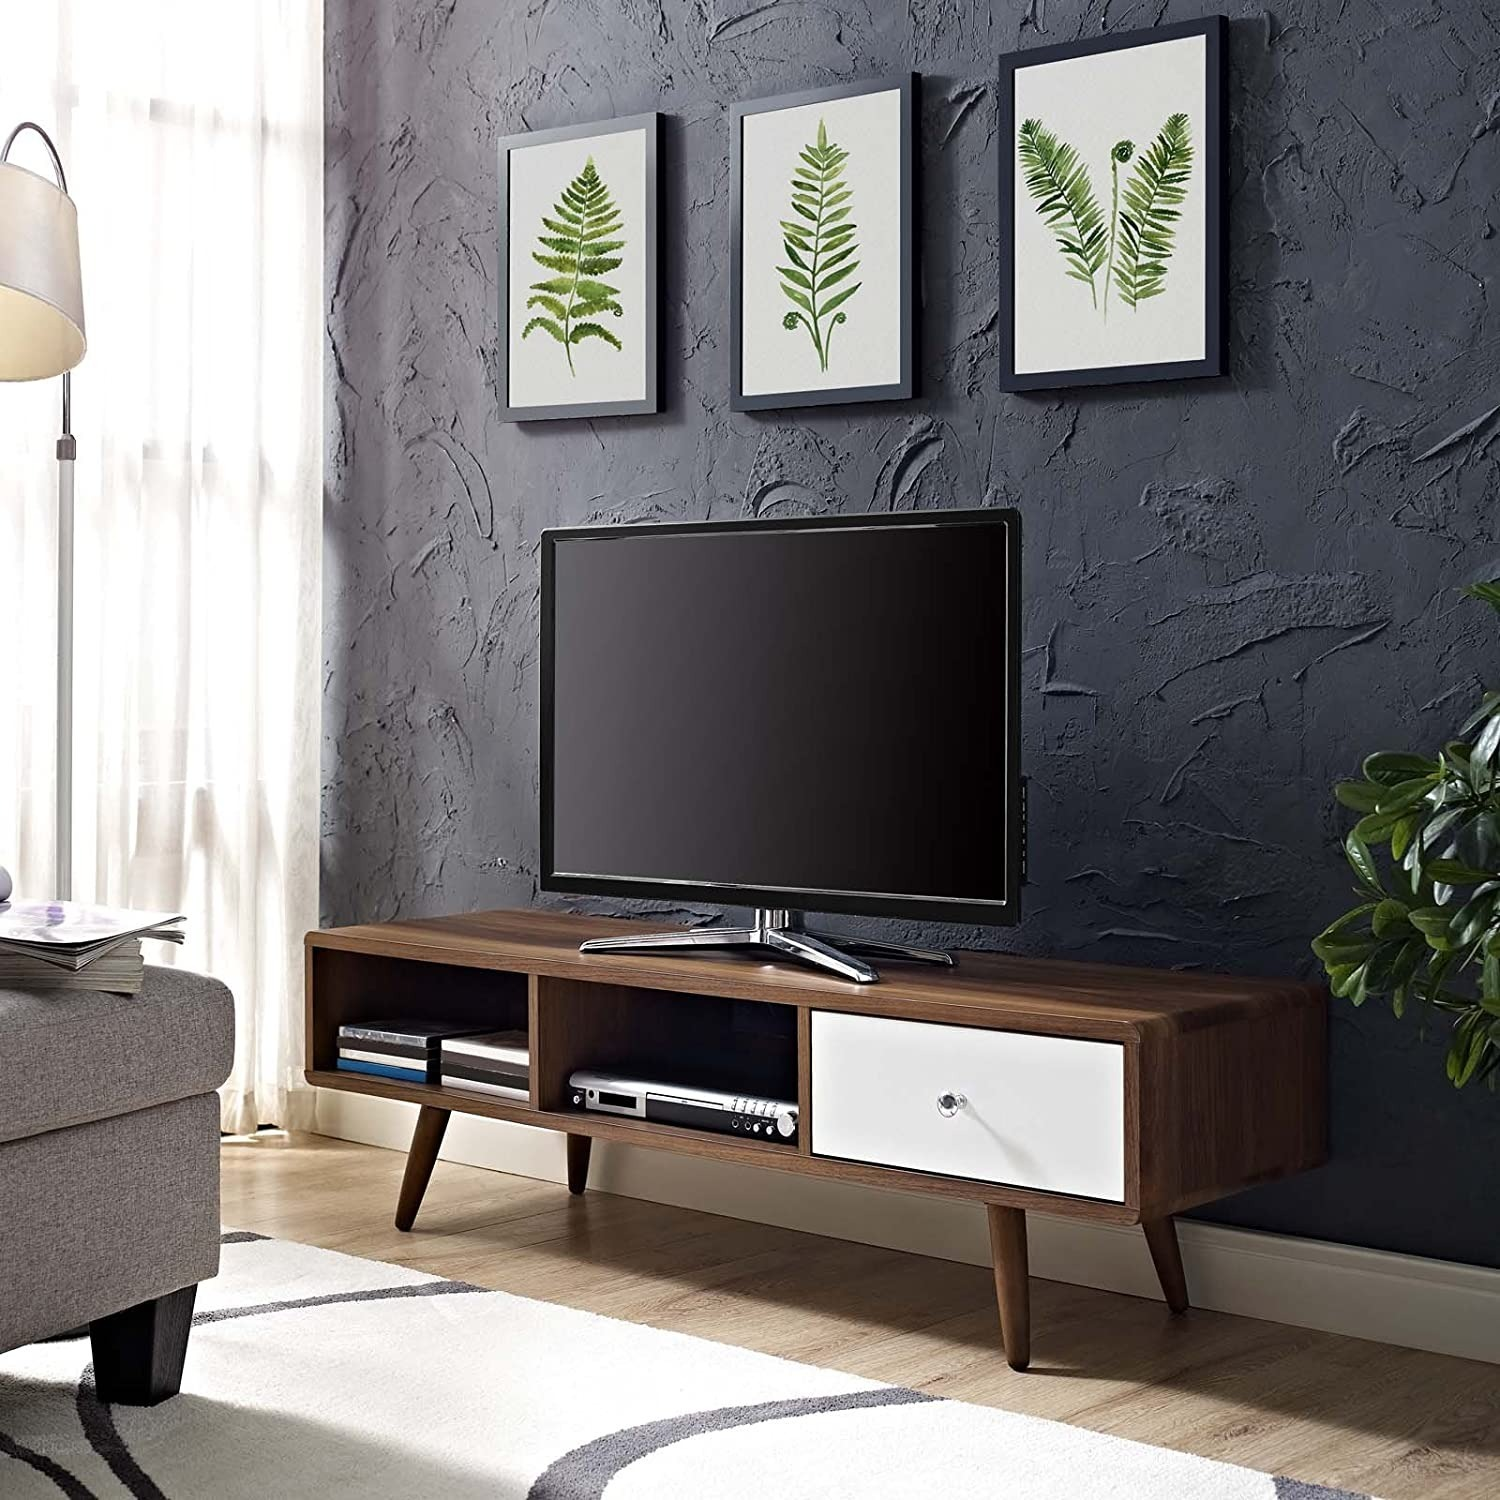 "Mid-Century Style TV Stand In 55"" Walnut Finish - image-4"